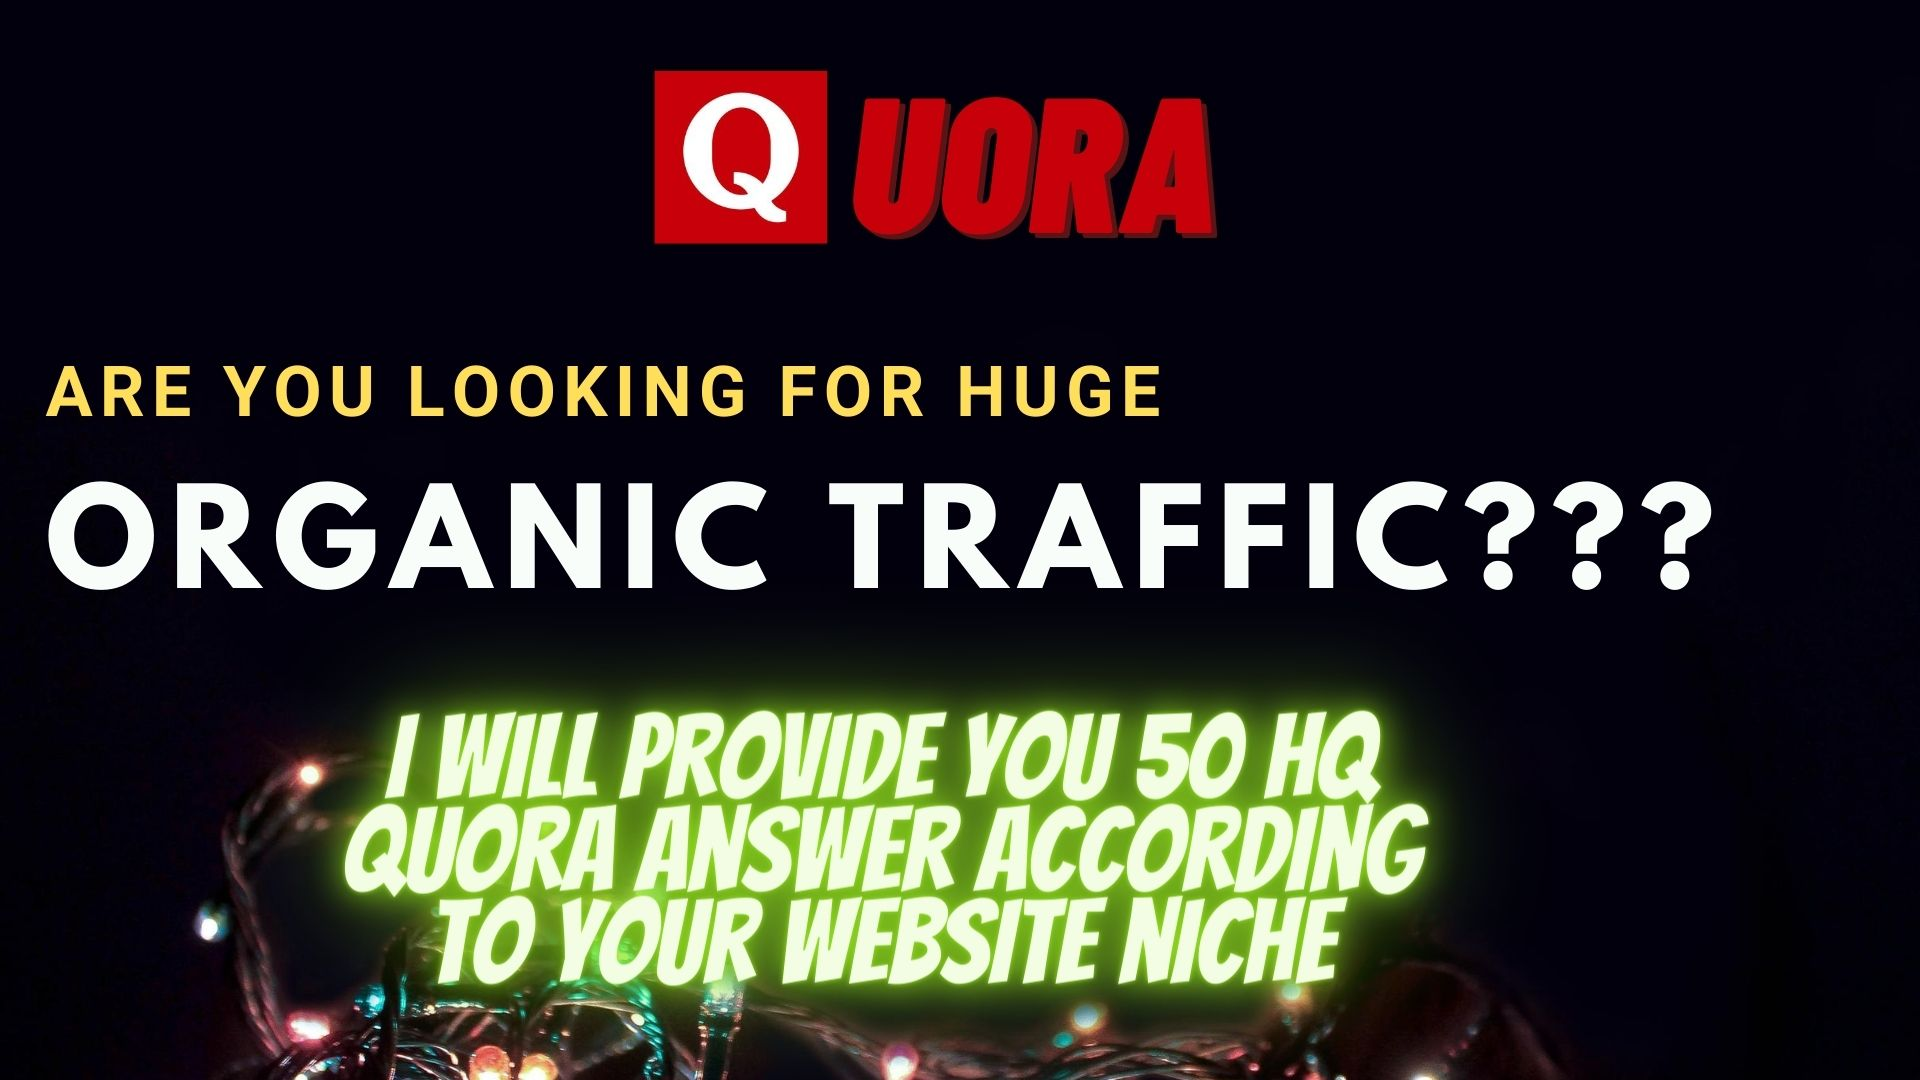 50 HQ Quora answers with your backlink and url